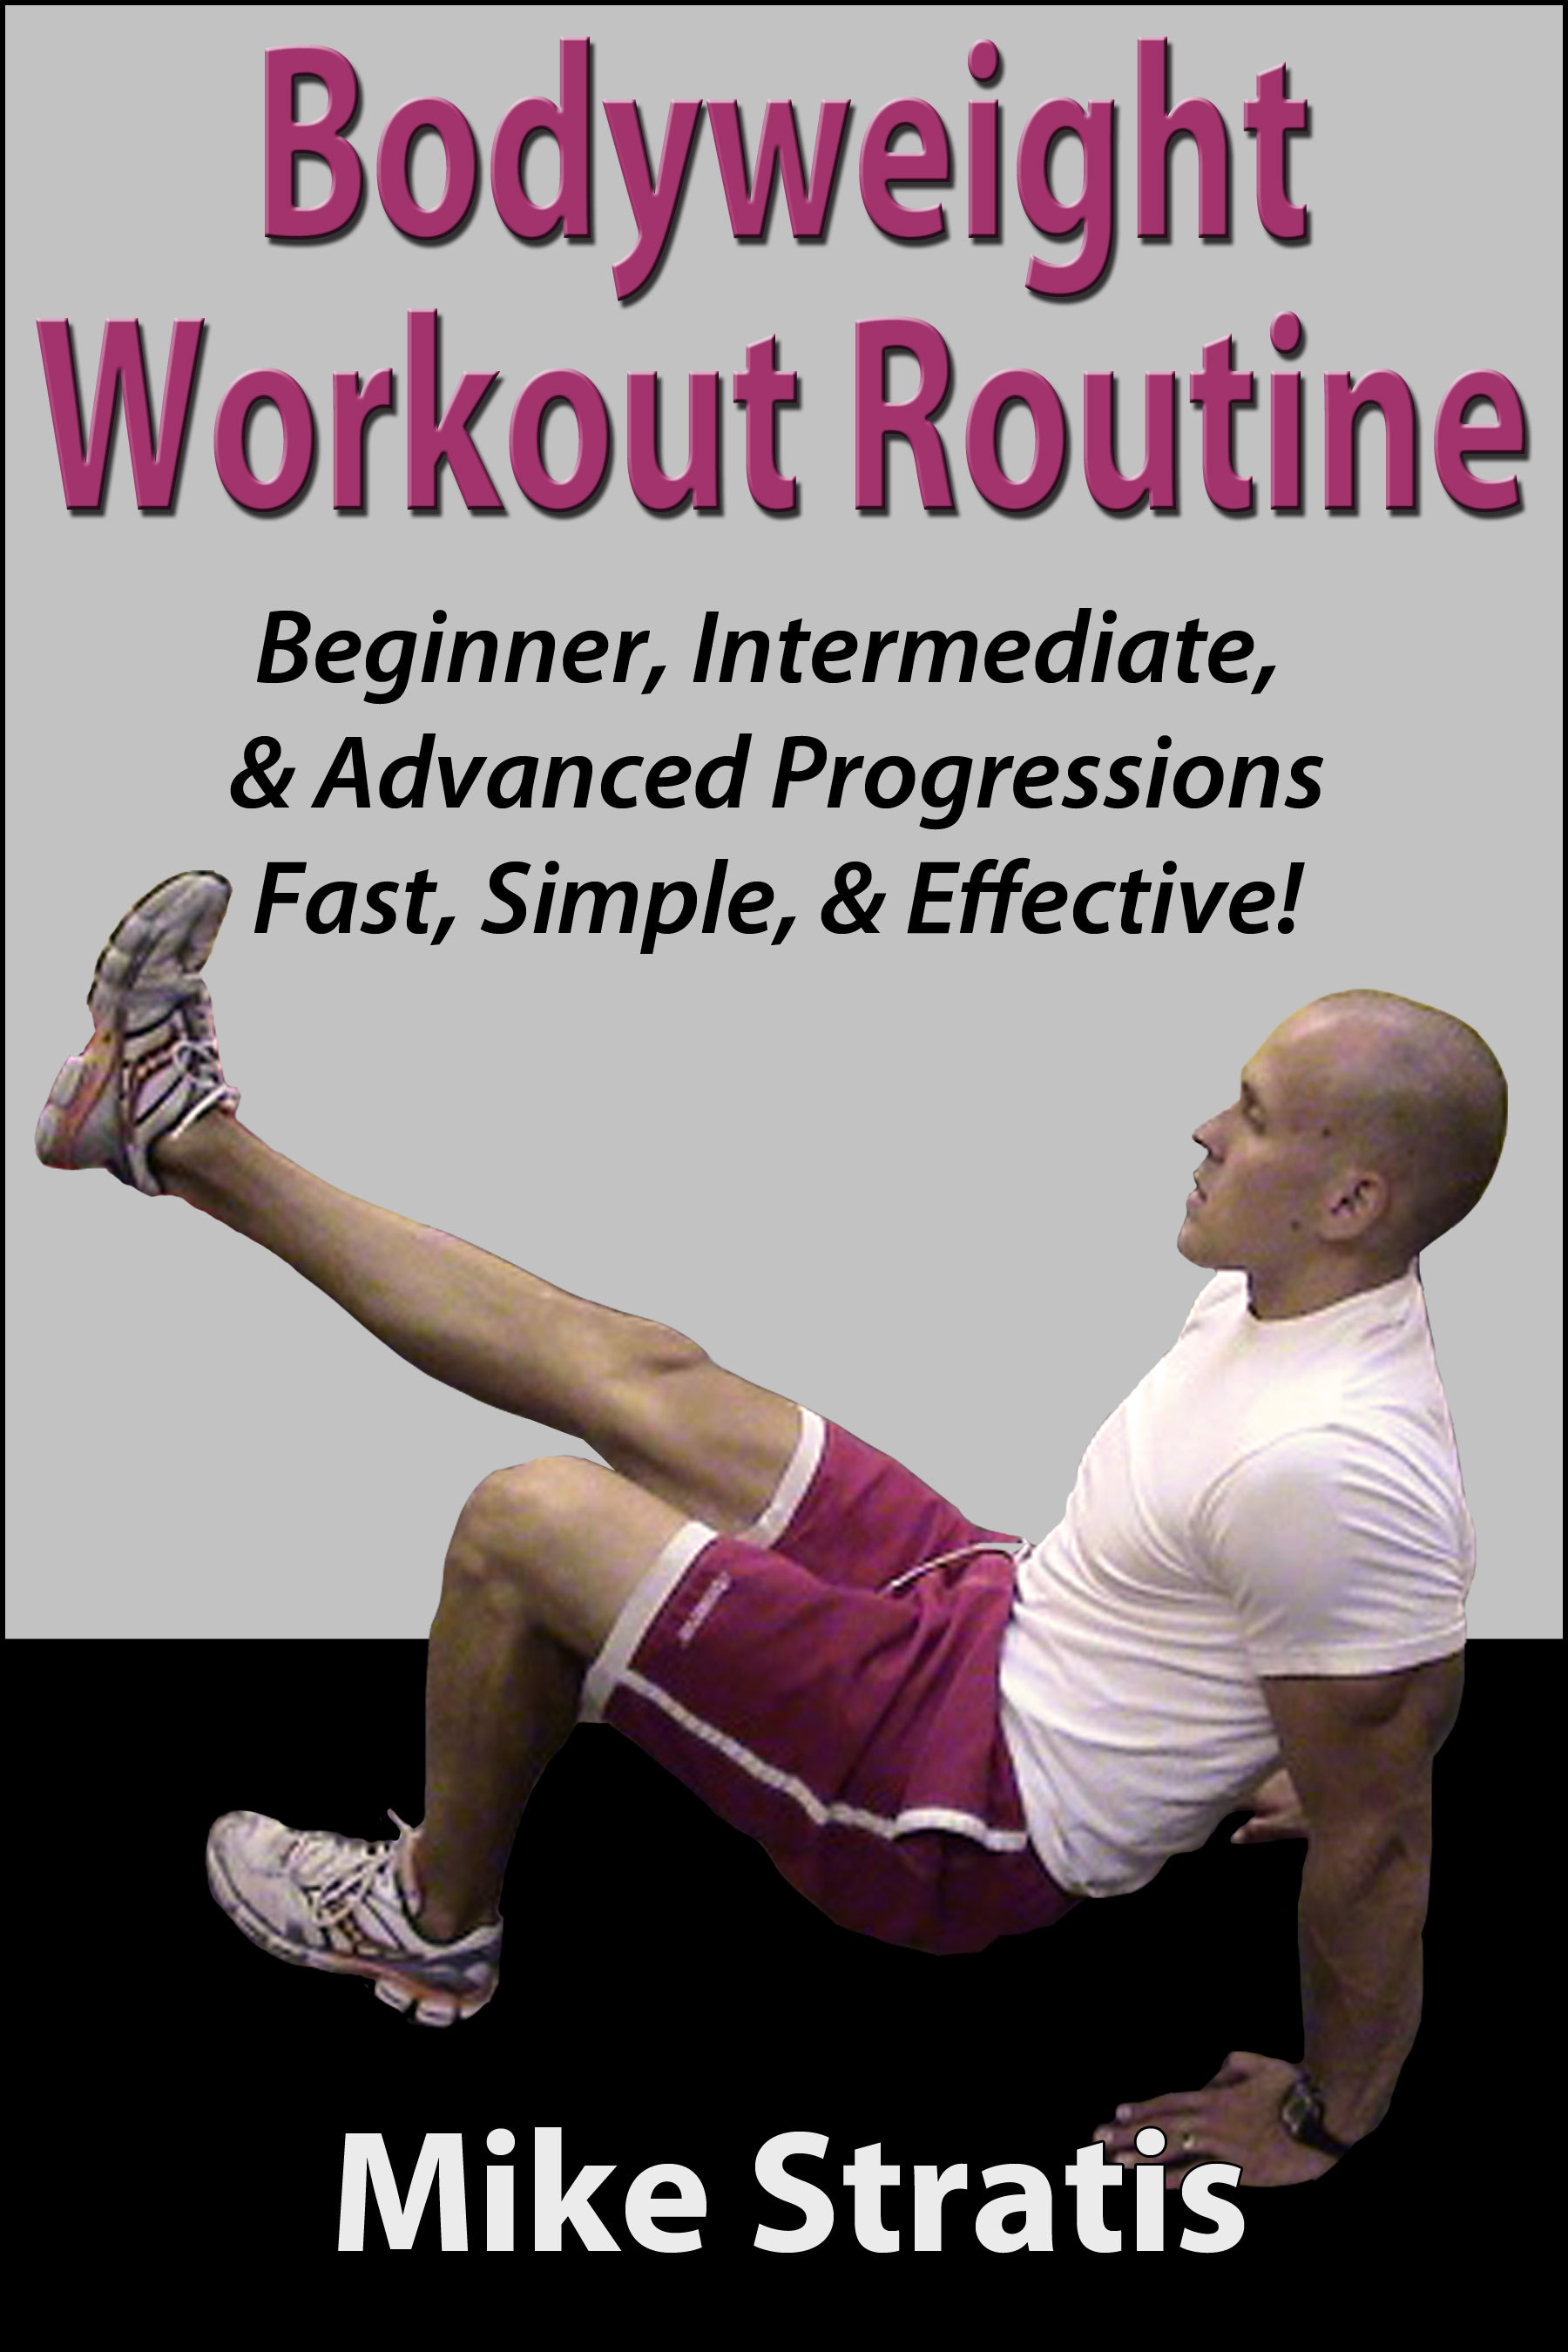 Bodyweight Workout Routine